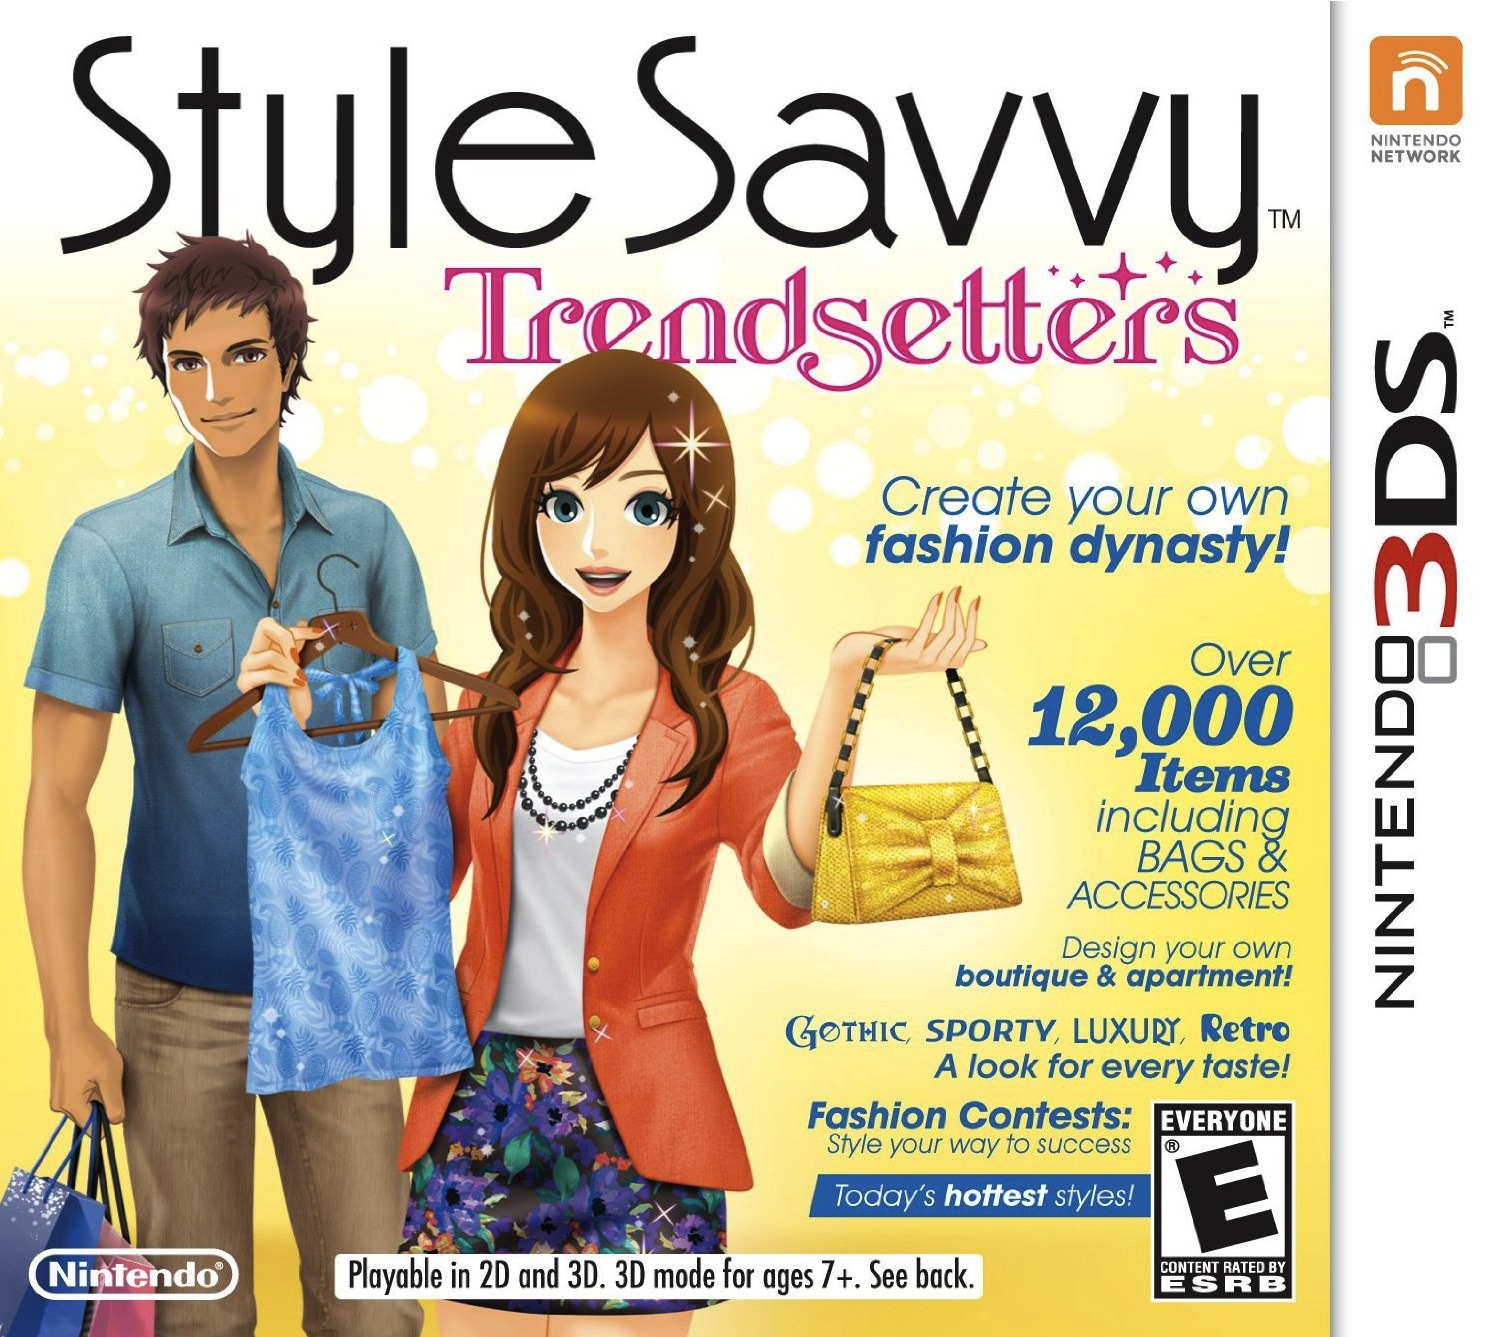 Style_Savvy_Trendsetters_%28NA%29.jpg